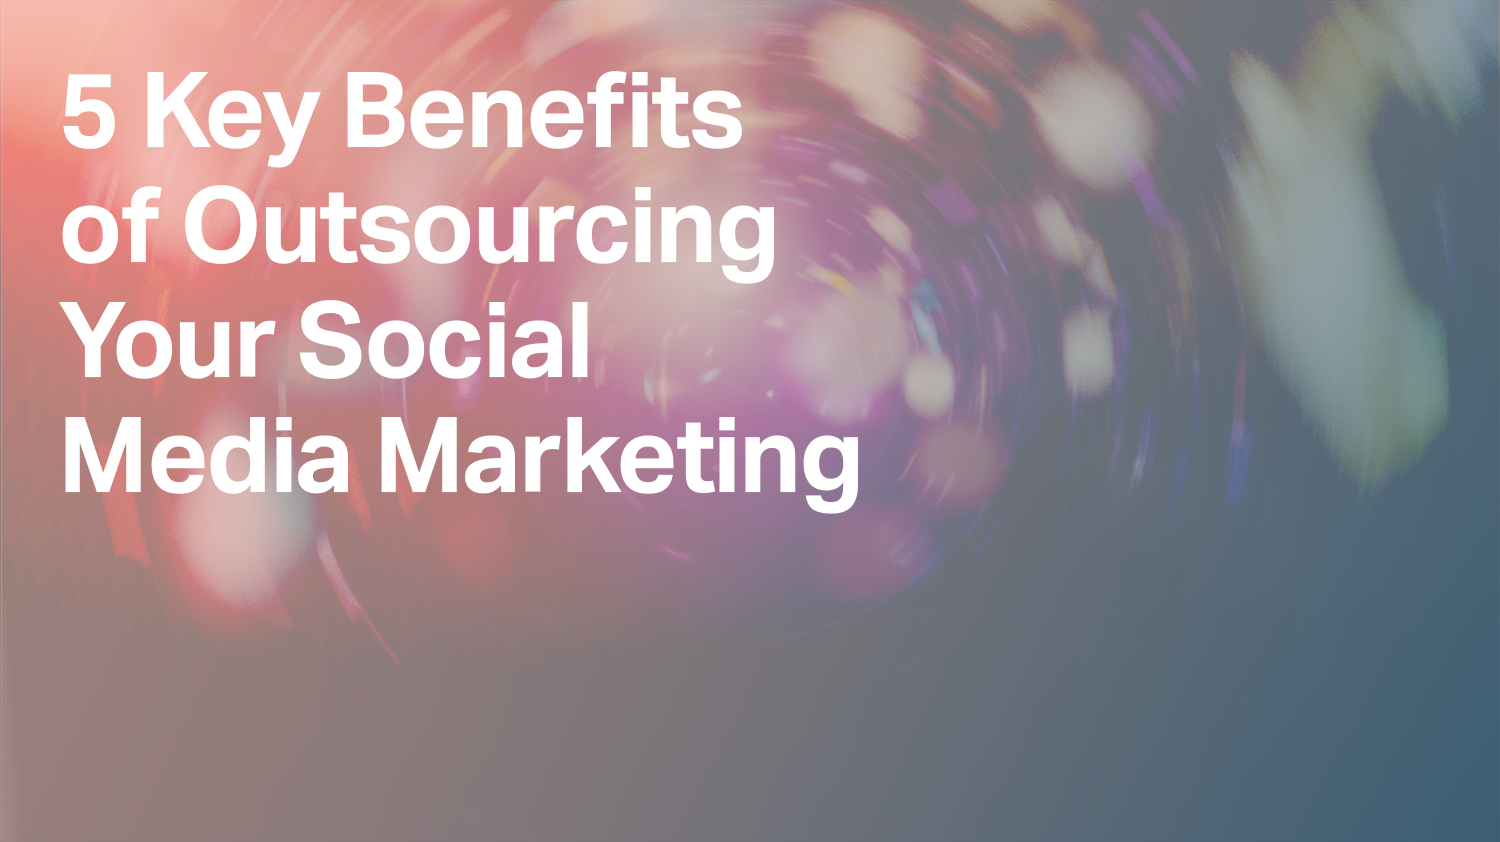 5 Key Benefits of Outsourcing Your Social Media Marketing